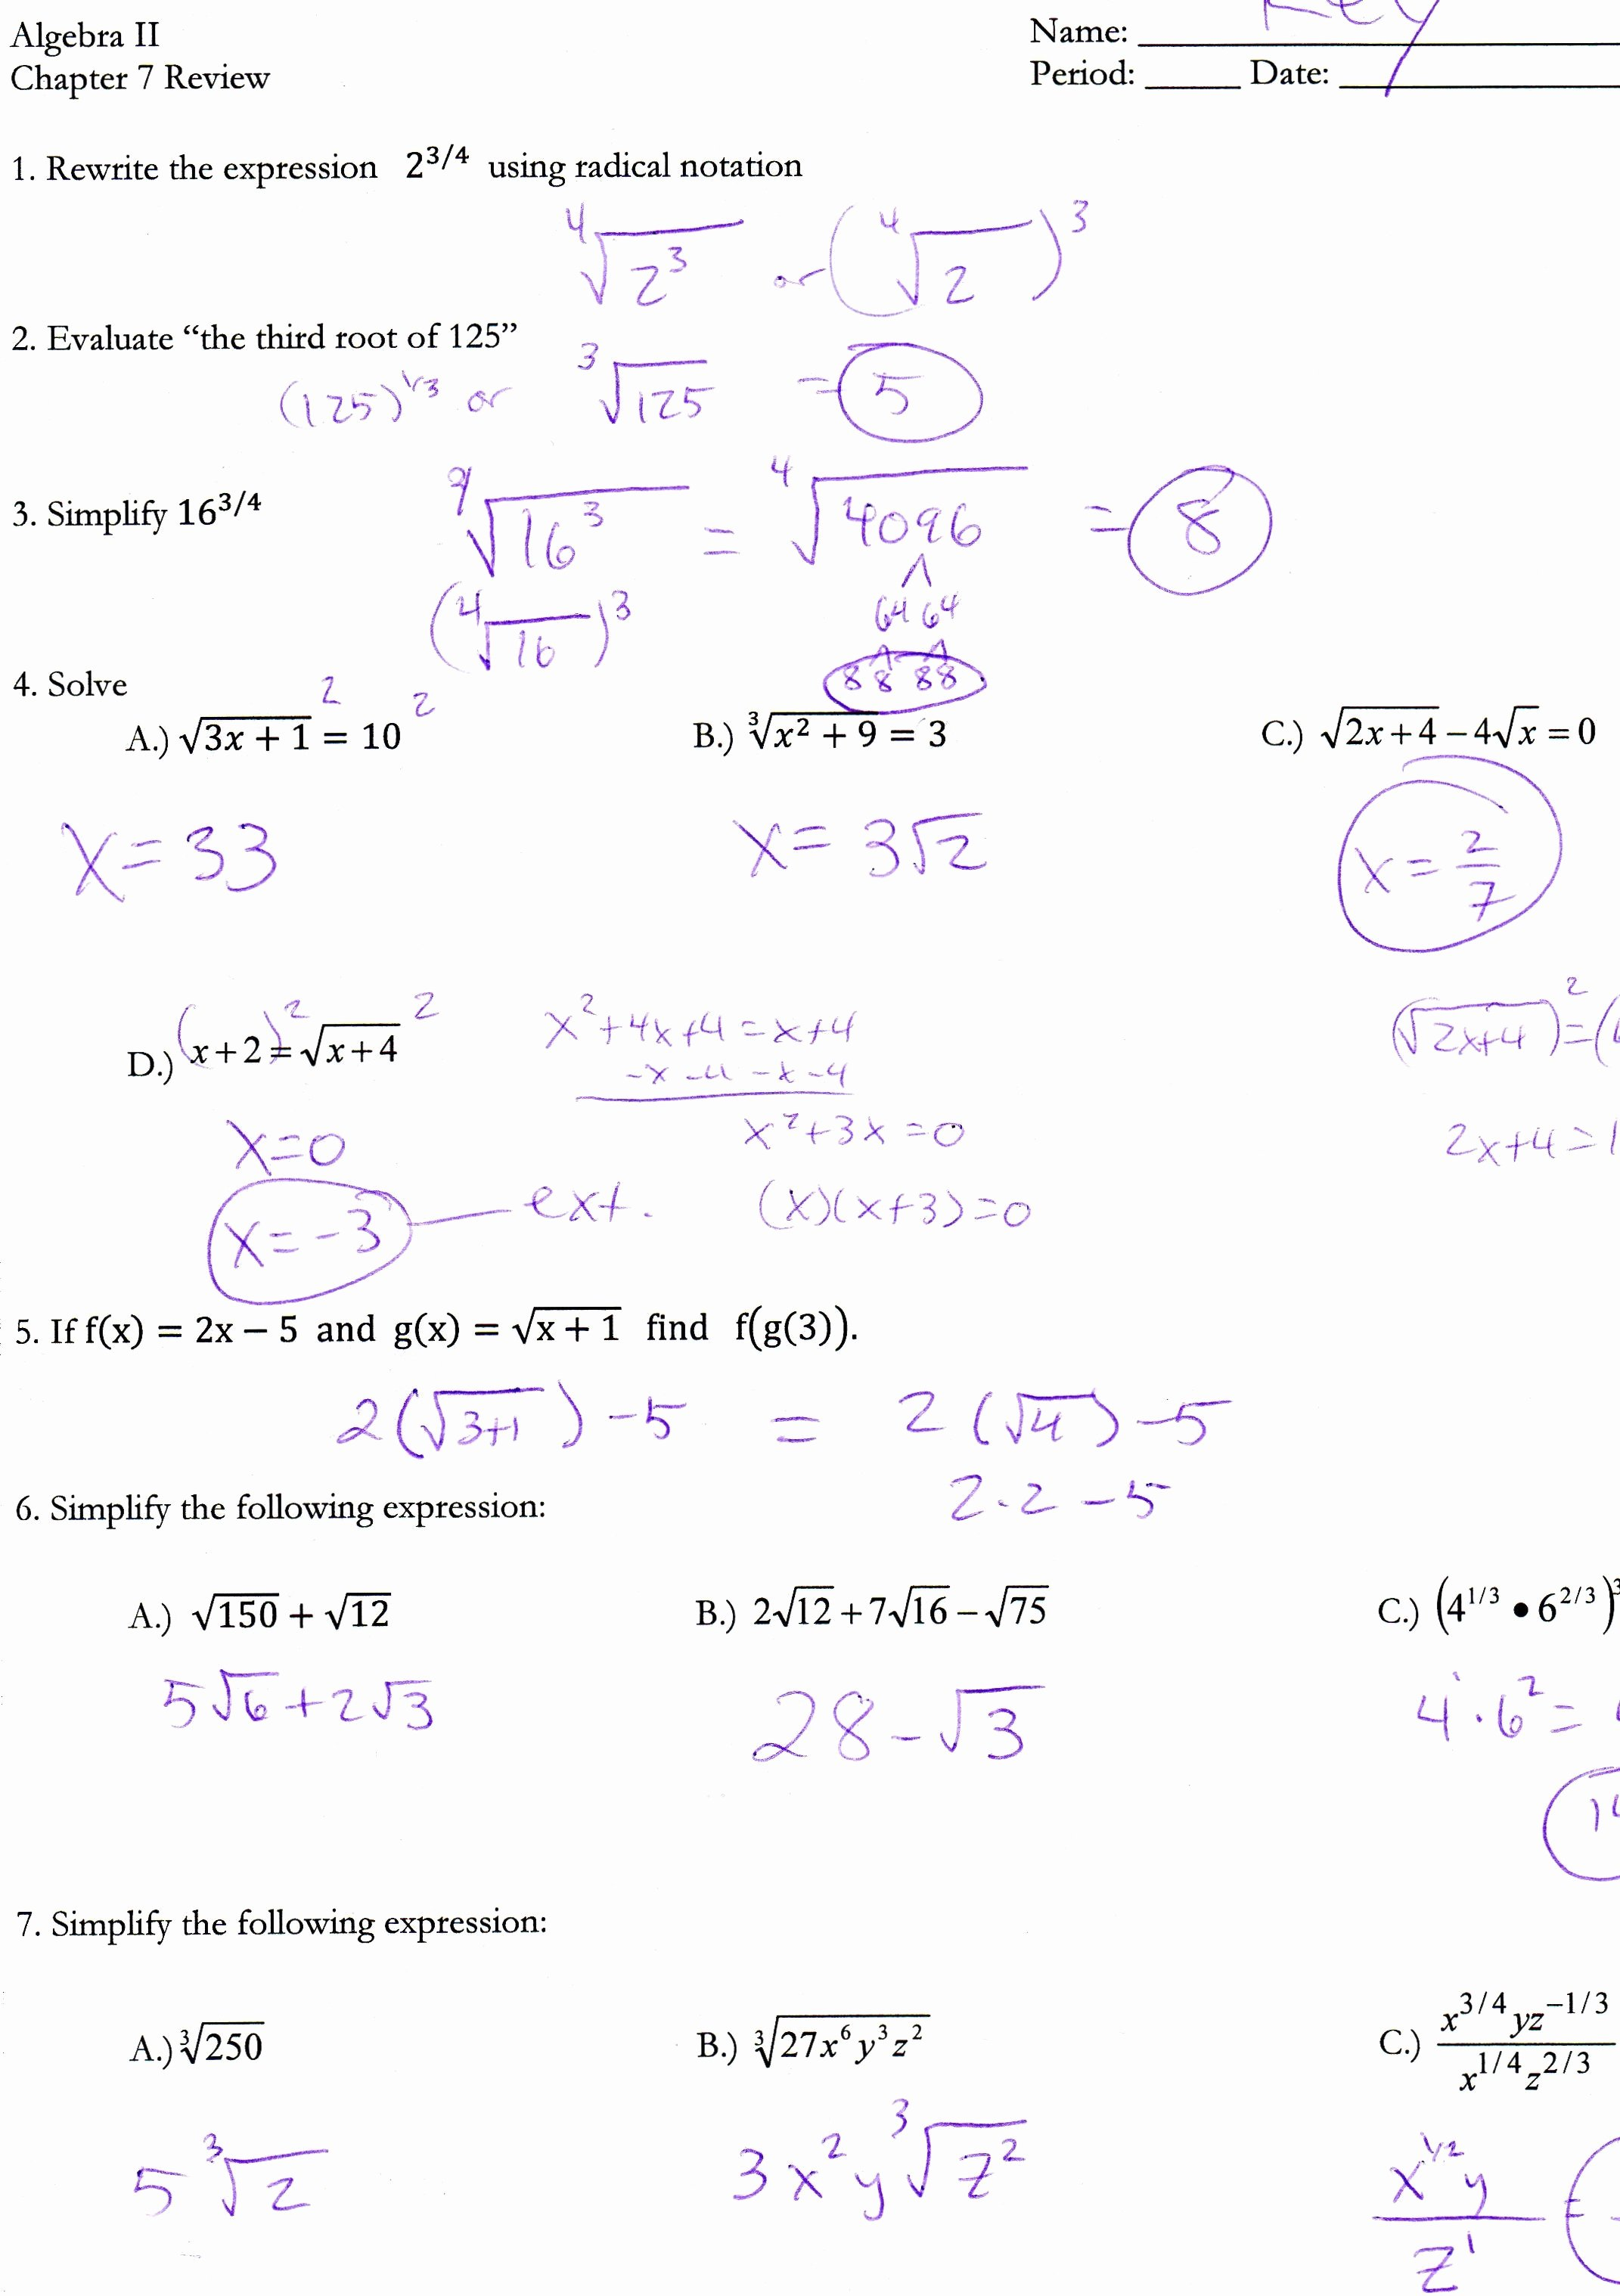 Solving Equations Review Worksheet Awesome Radicals Worksheet Algebra 2